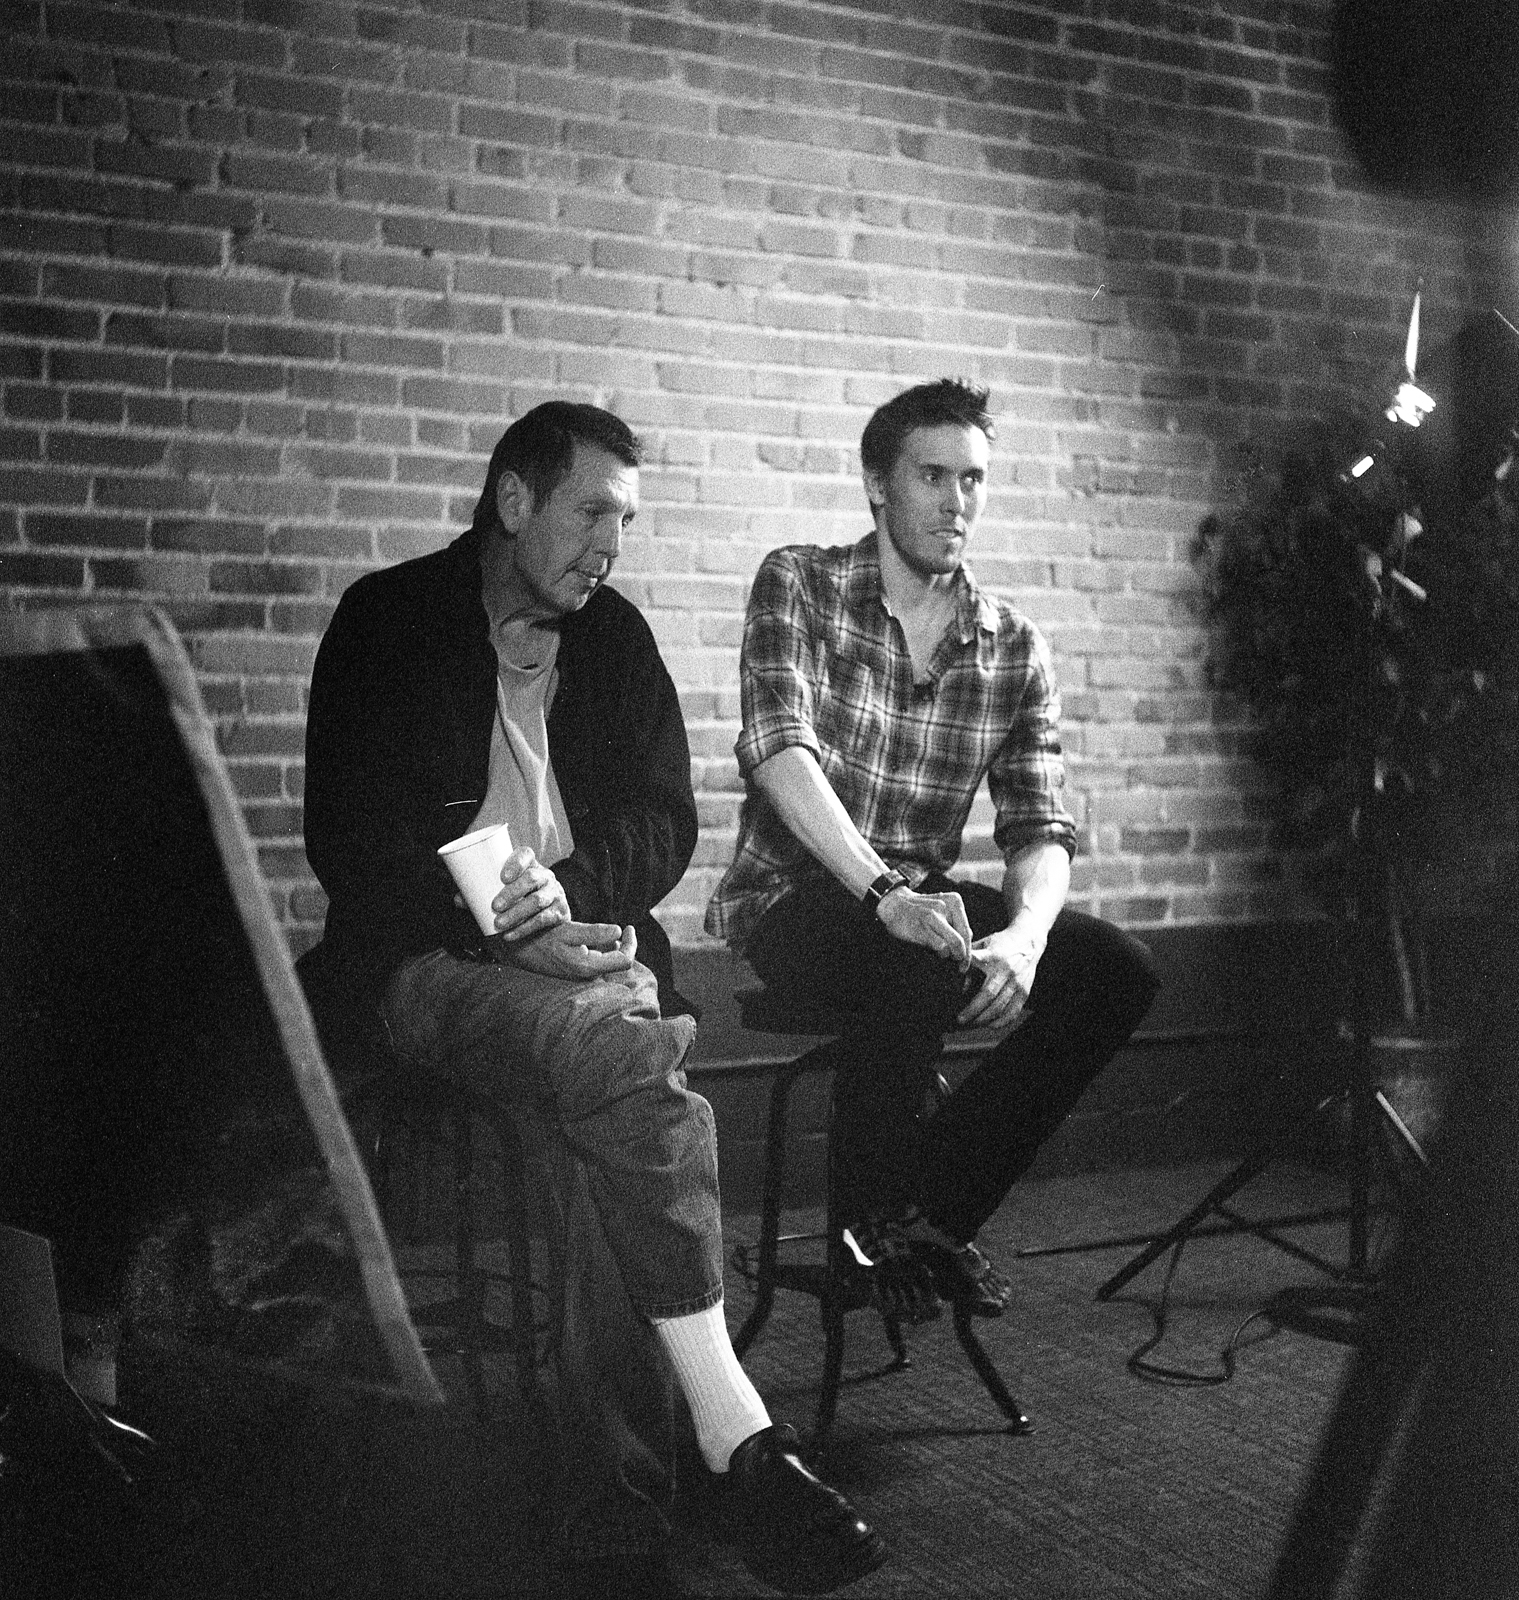 Behind the scenes at Creative Live with Gale Tatterersall,2011.